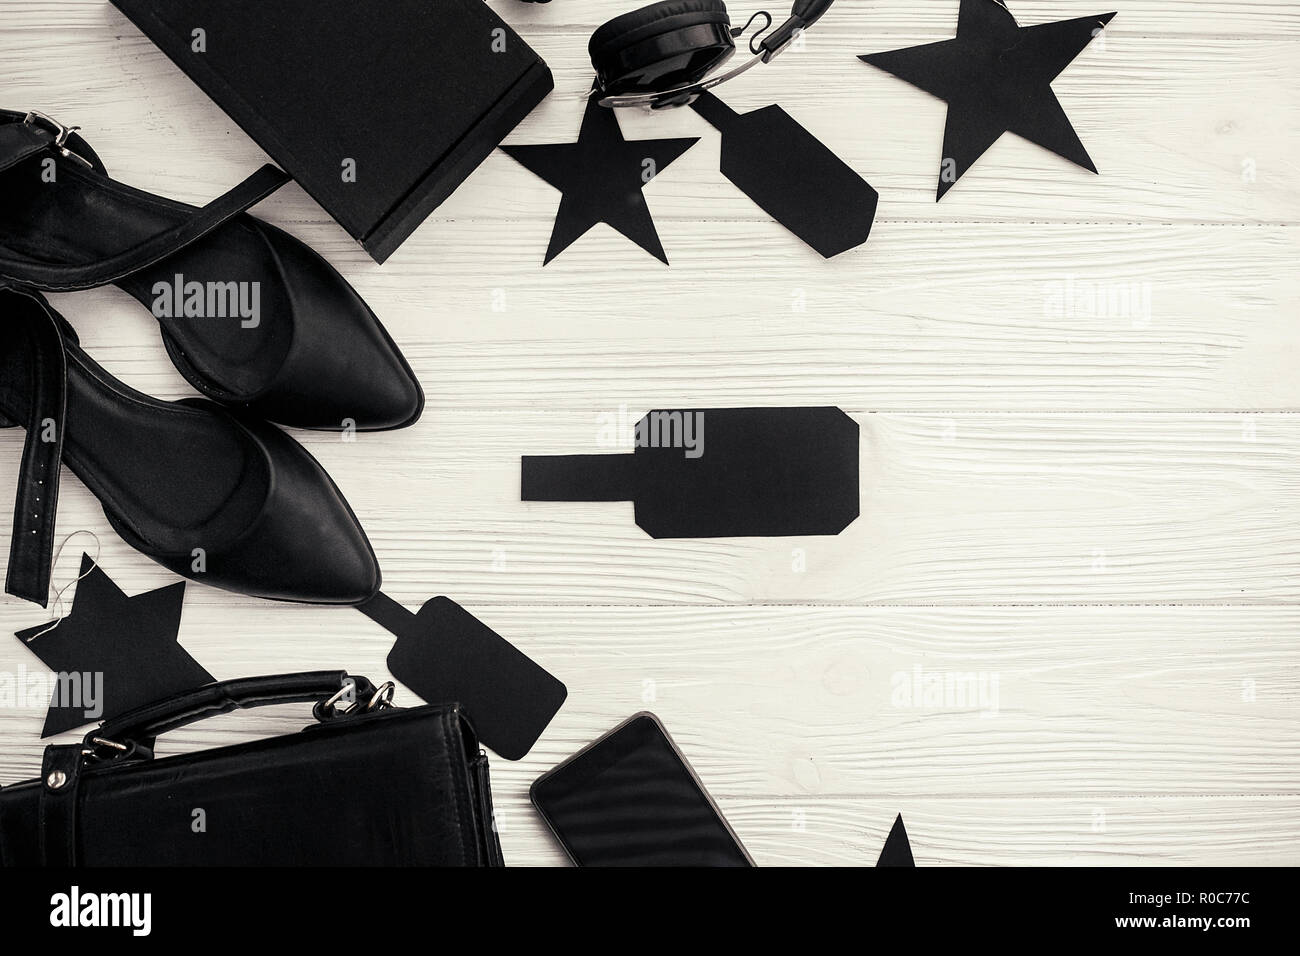 Black bag, gift box, black price tags, phone, shoes on white background flat lay. Space for text. Christmas shopping and sales. Stylish Black Friday.  - Stock Image